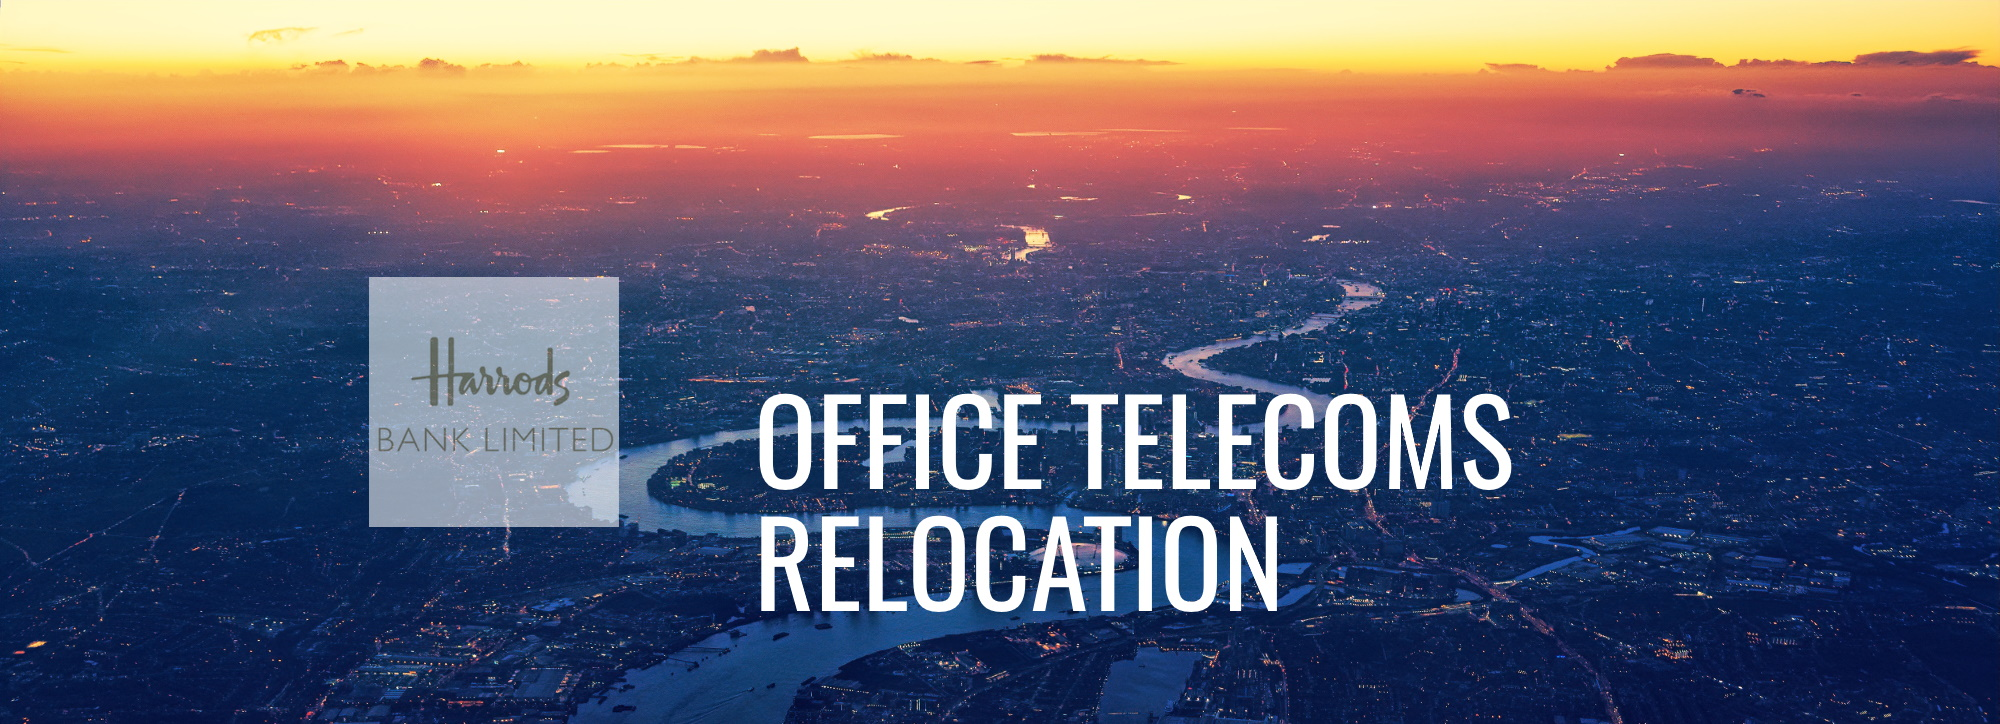 Telephone System Relocation - London Office Telecoms Relocation Case Study - Harrods